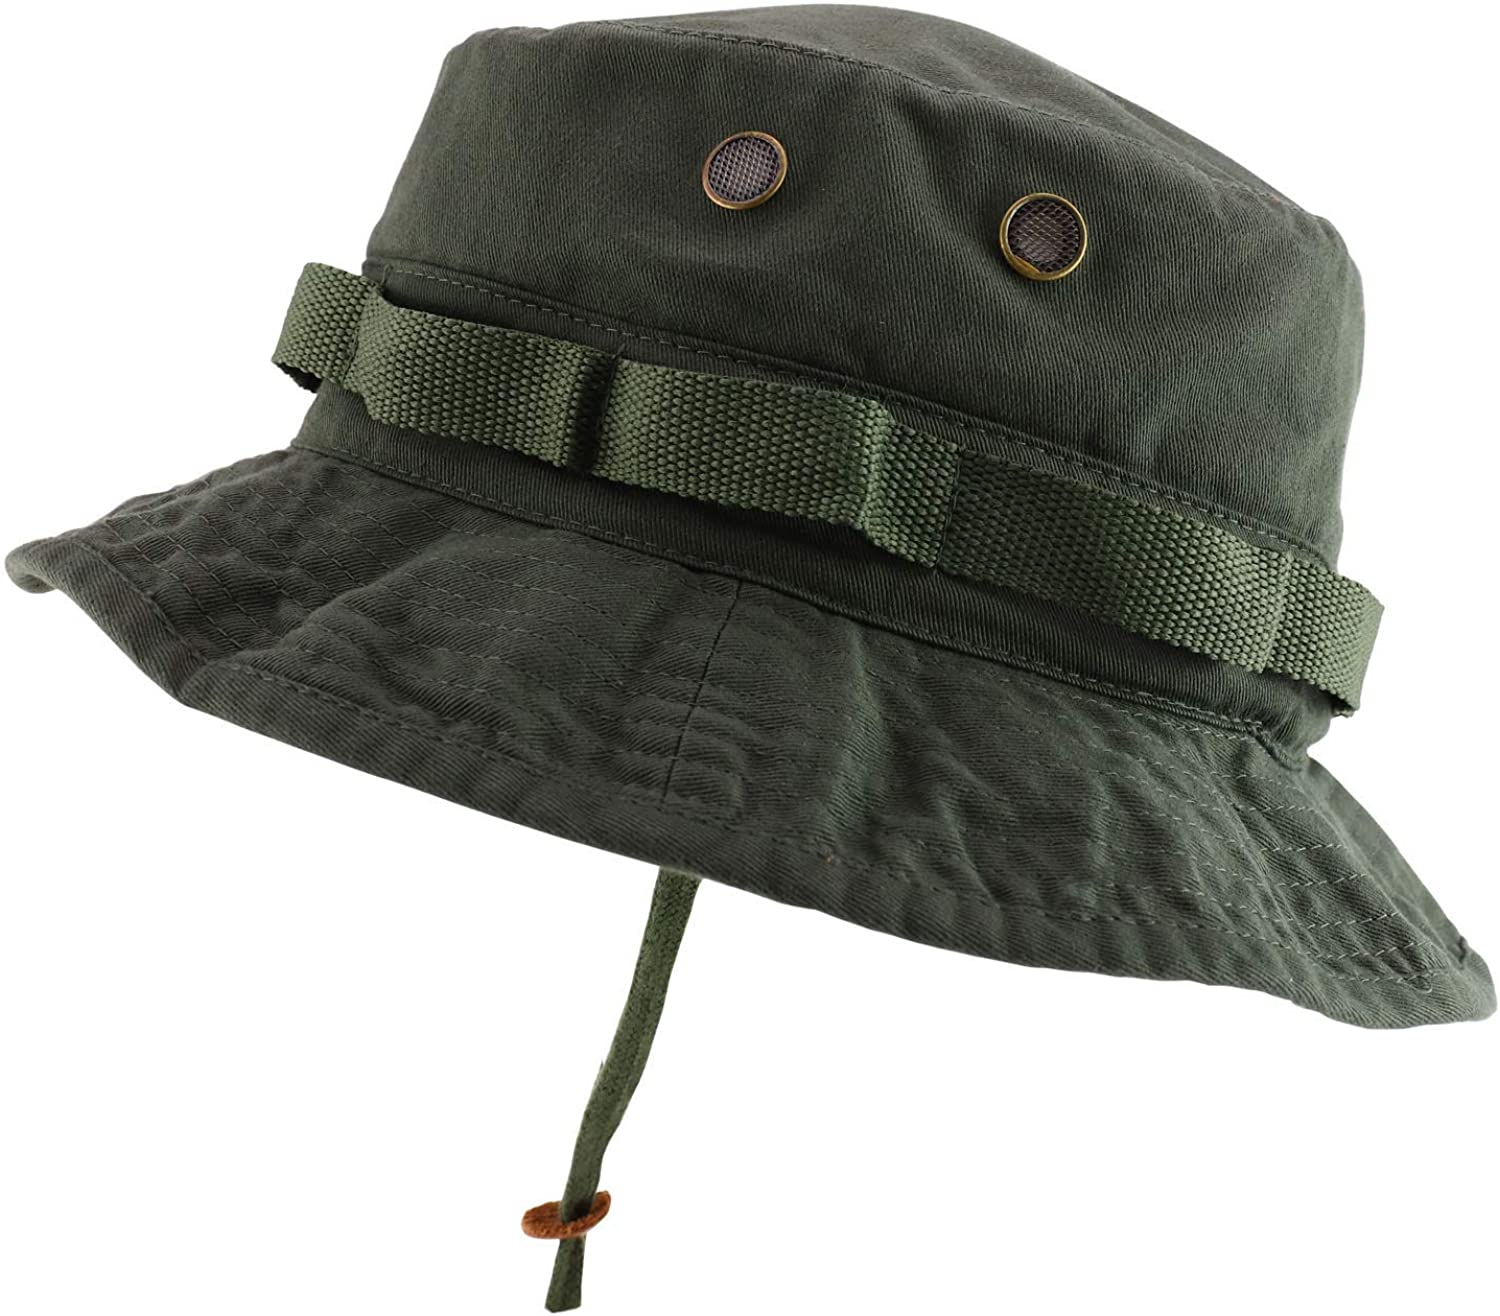 Rapid Dominance Washed Cotton Military Boonie Hat with Drawstring